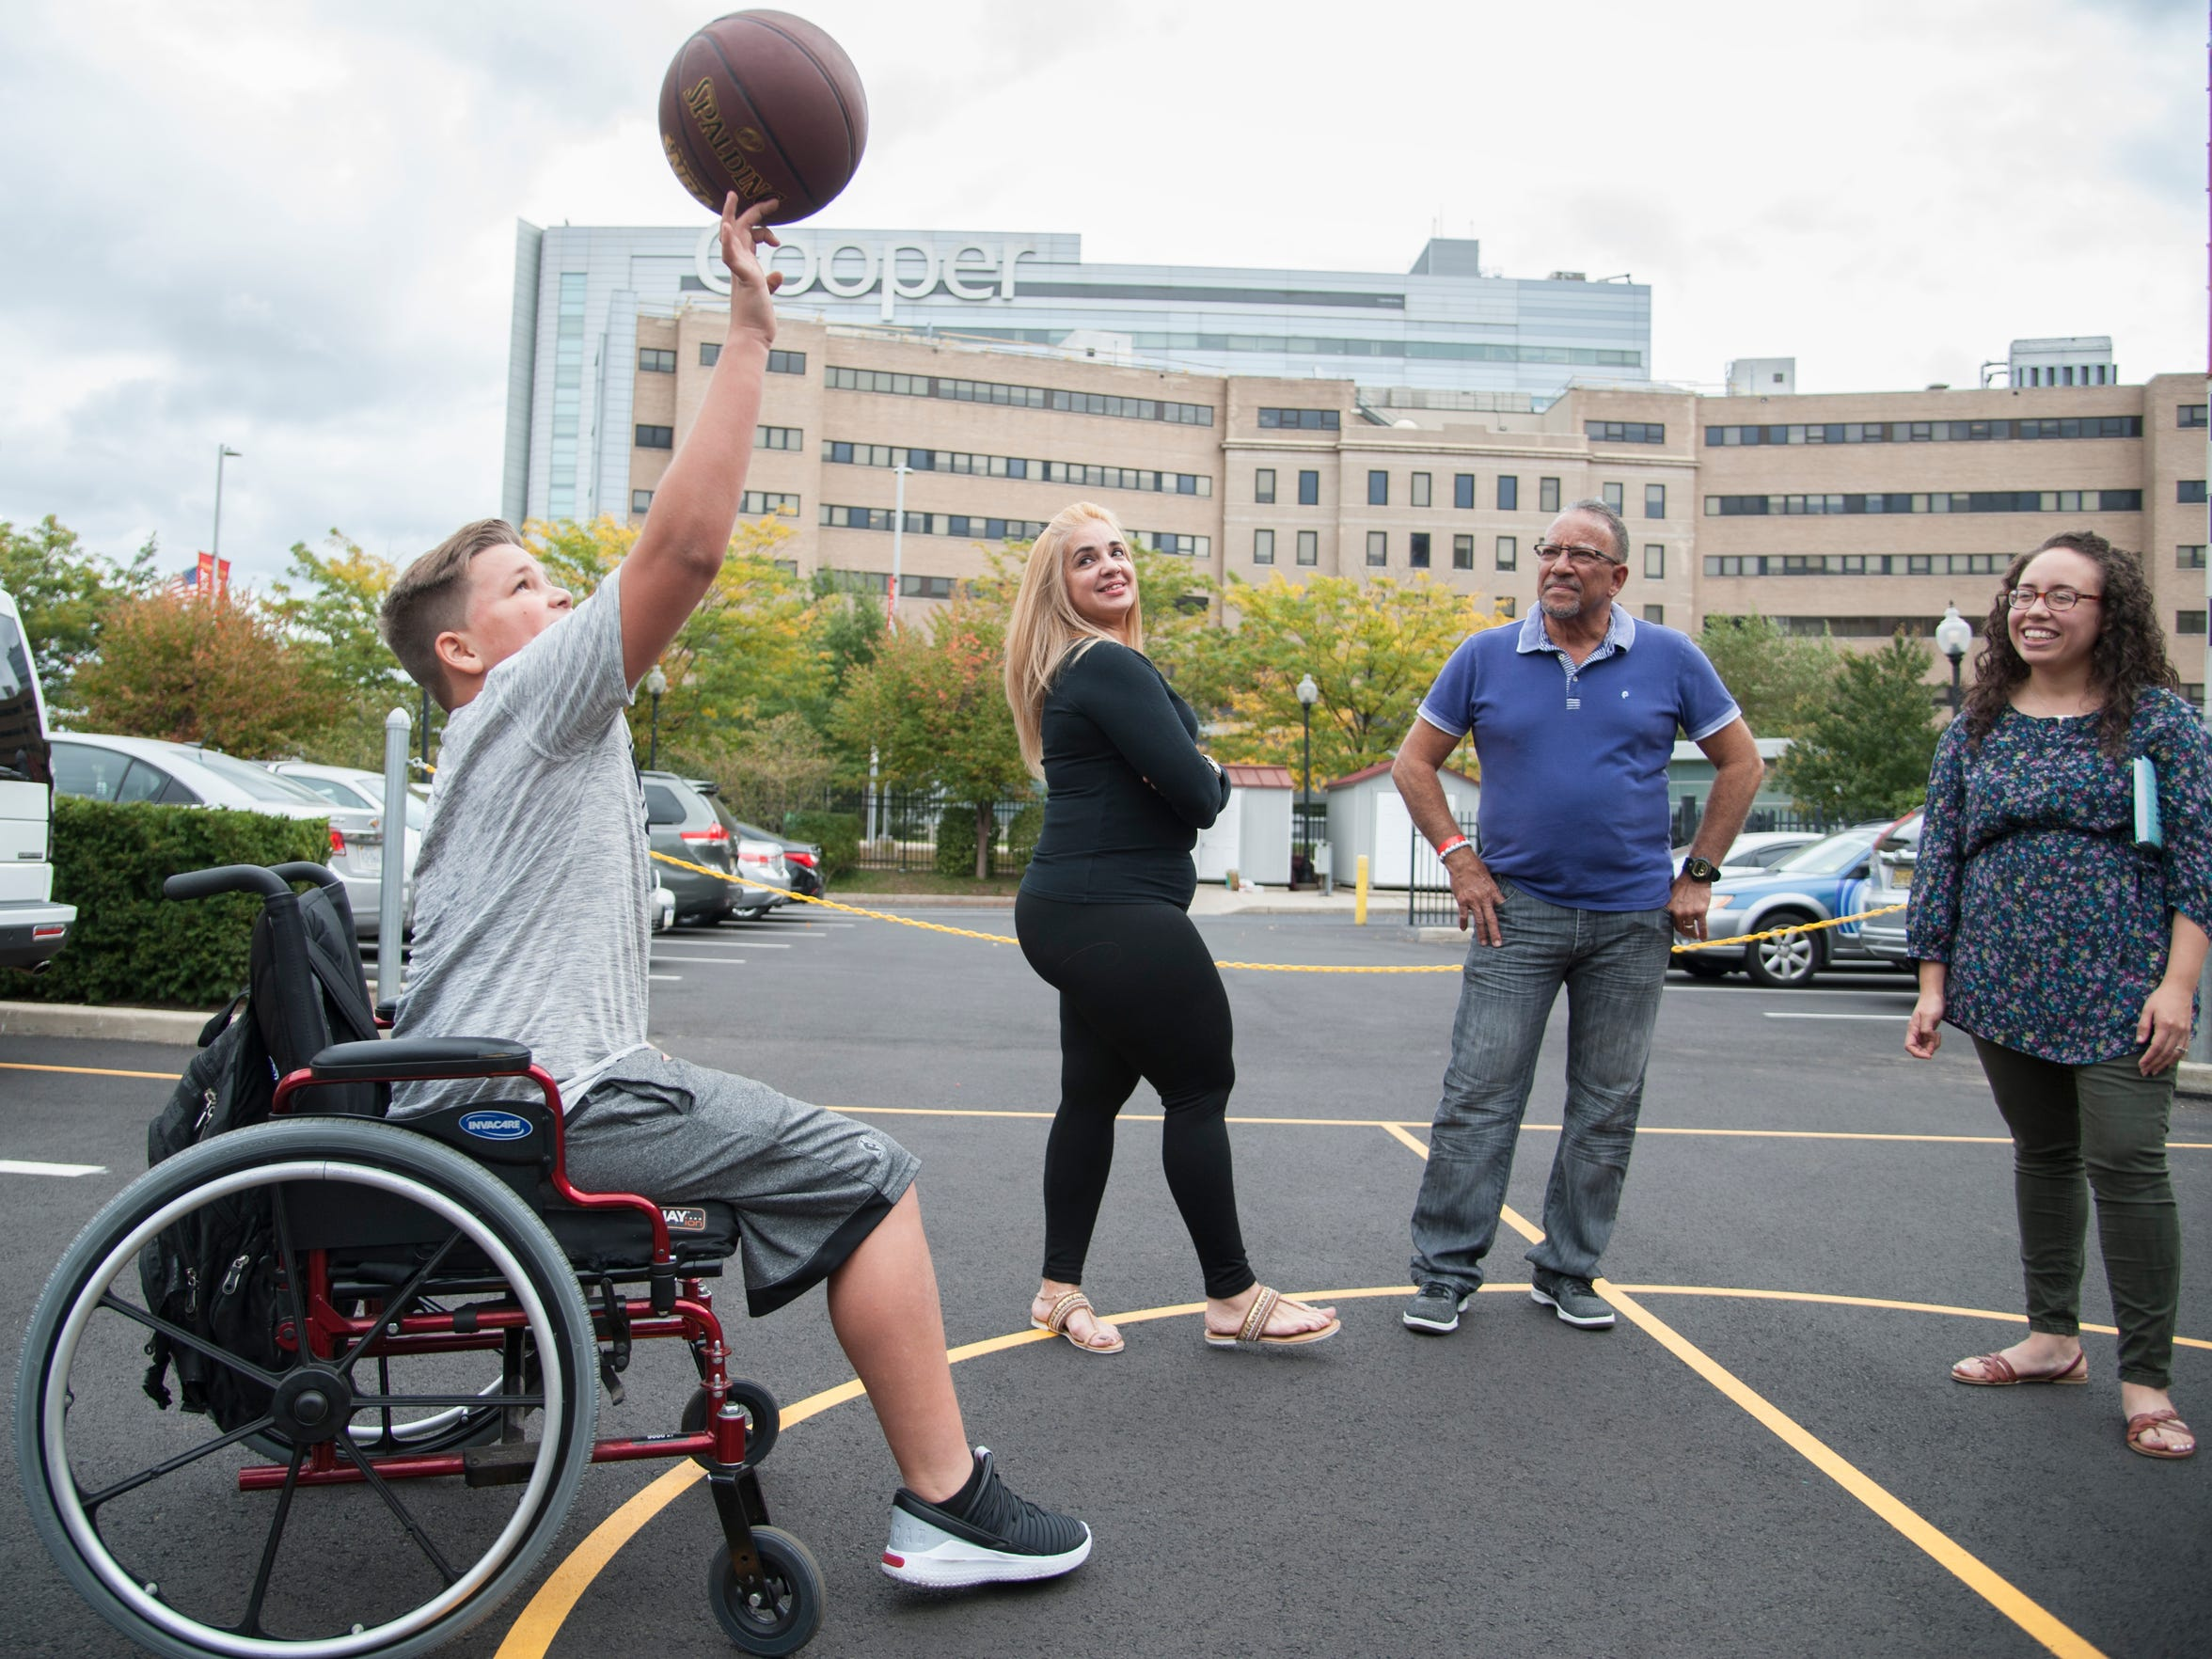 Luis Chiclana, 12 of Puerto Rico, spins a basketball on his finger outside of the Ronald McDonald House in Camden, as (backgound l-r) his mother Joana, father Angel, and translator Sonia Mixter-Guzman watch.  .   Luis was born without a tiba and fibia and is staying at the Ronald McDonald House in Camden with his parents while undergoing treatment, and will soon receive a prosthetic leg.  Luis and parents will be going back to Puerto Rico later this month.  Luis dreams of challenging his idol Michael Jordan to a game.